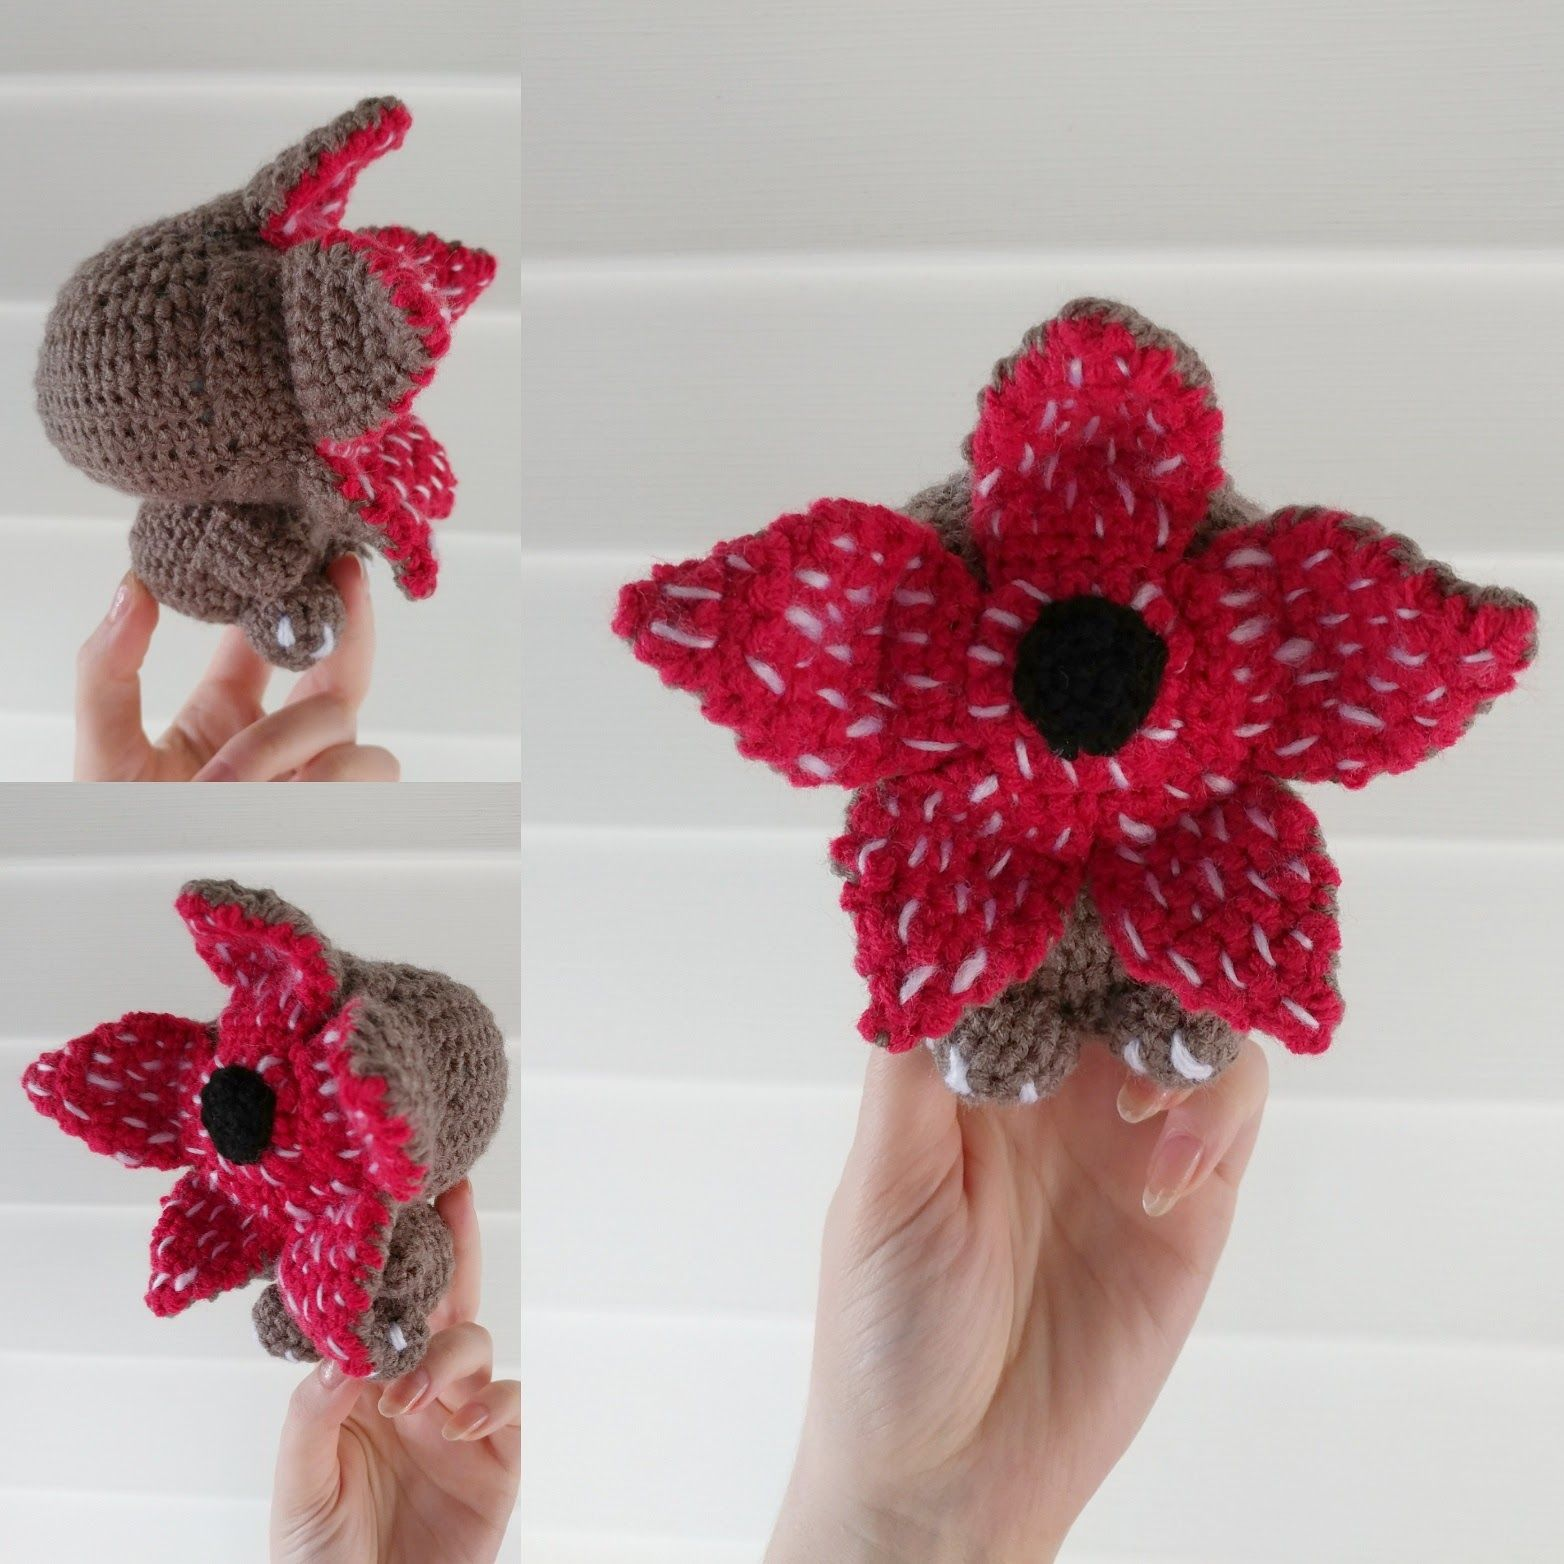 Demogorgon - Stranger Things Plush | flores | Pinterest